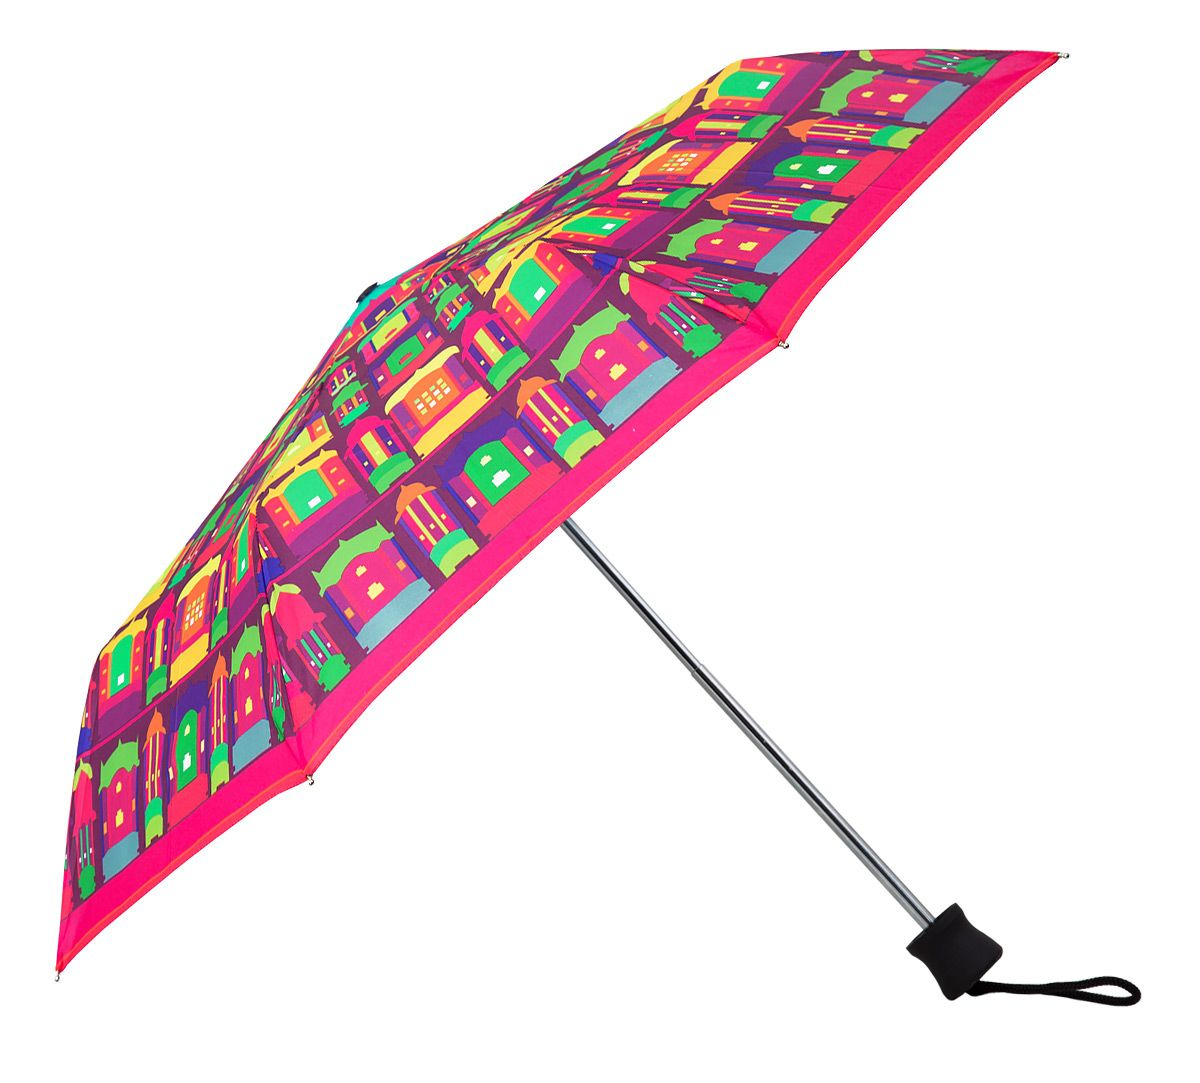 Palatial Illusions 3 Fold Umbrella | Rainy Umbrella